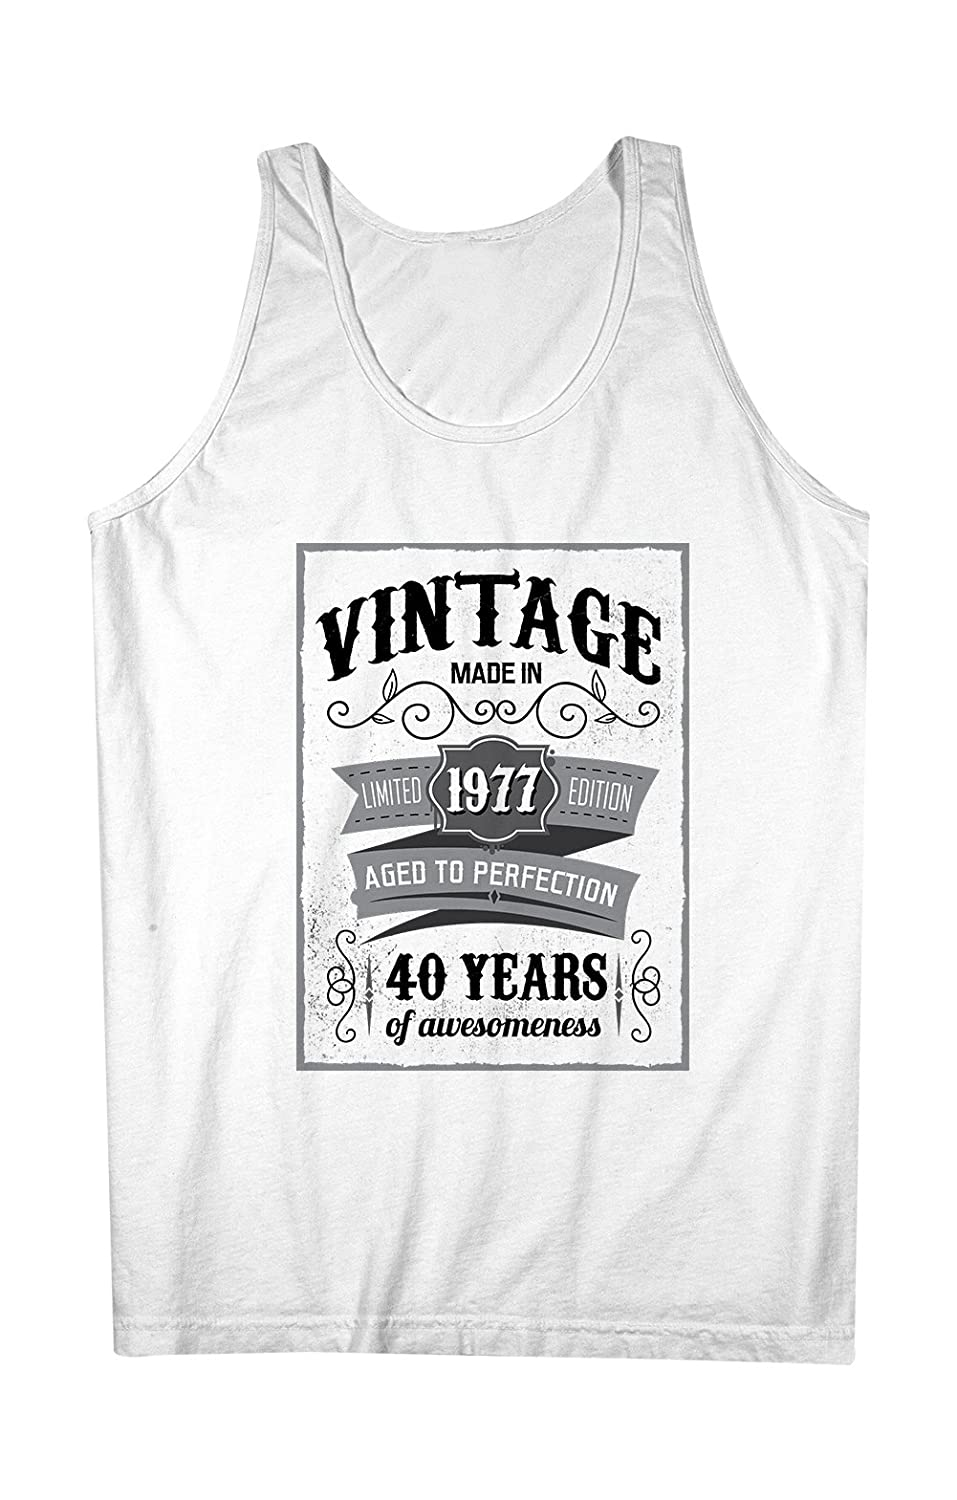 Vintage Made In 1977 40 Years お誕生日 男性用 Tank Top Sleeveless Shirt